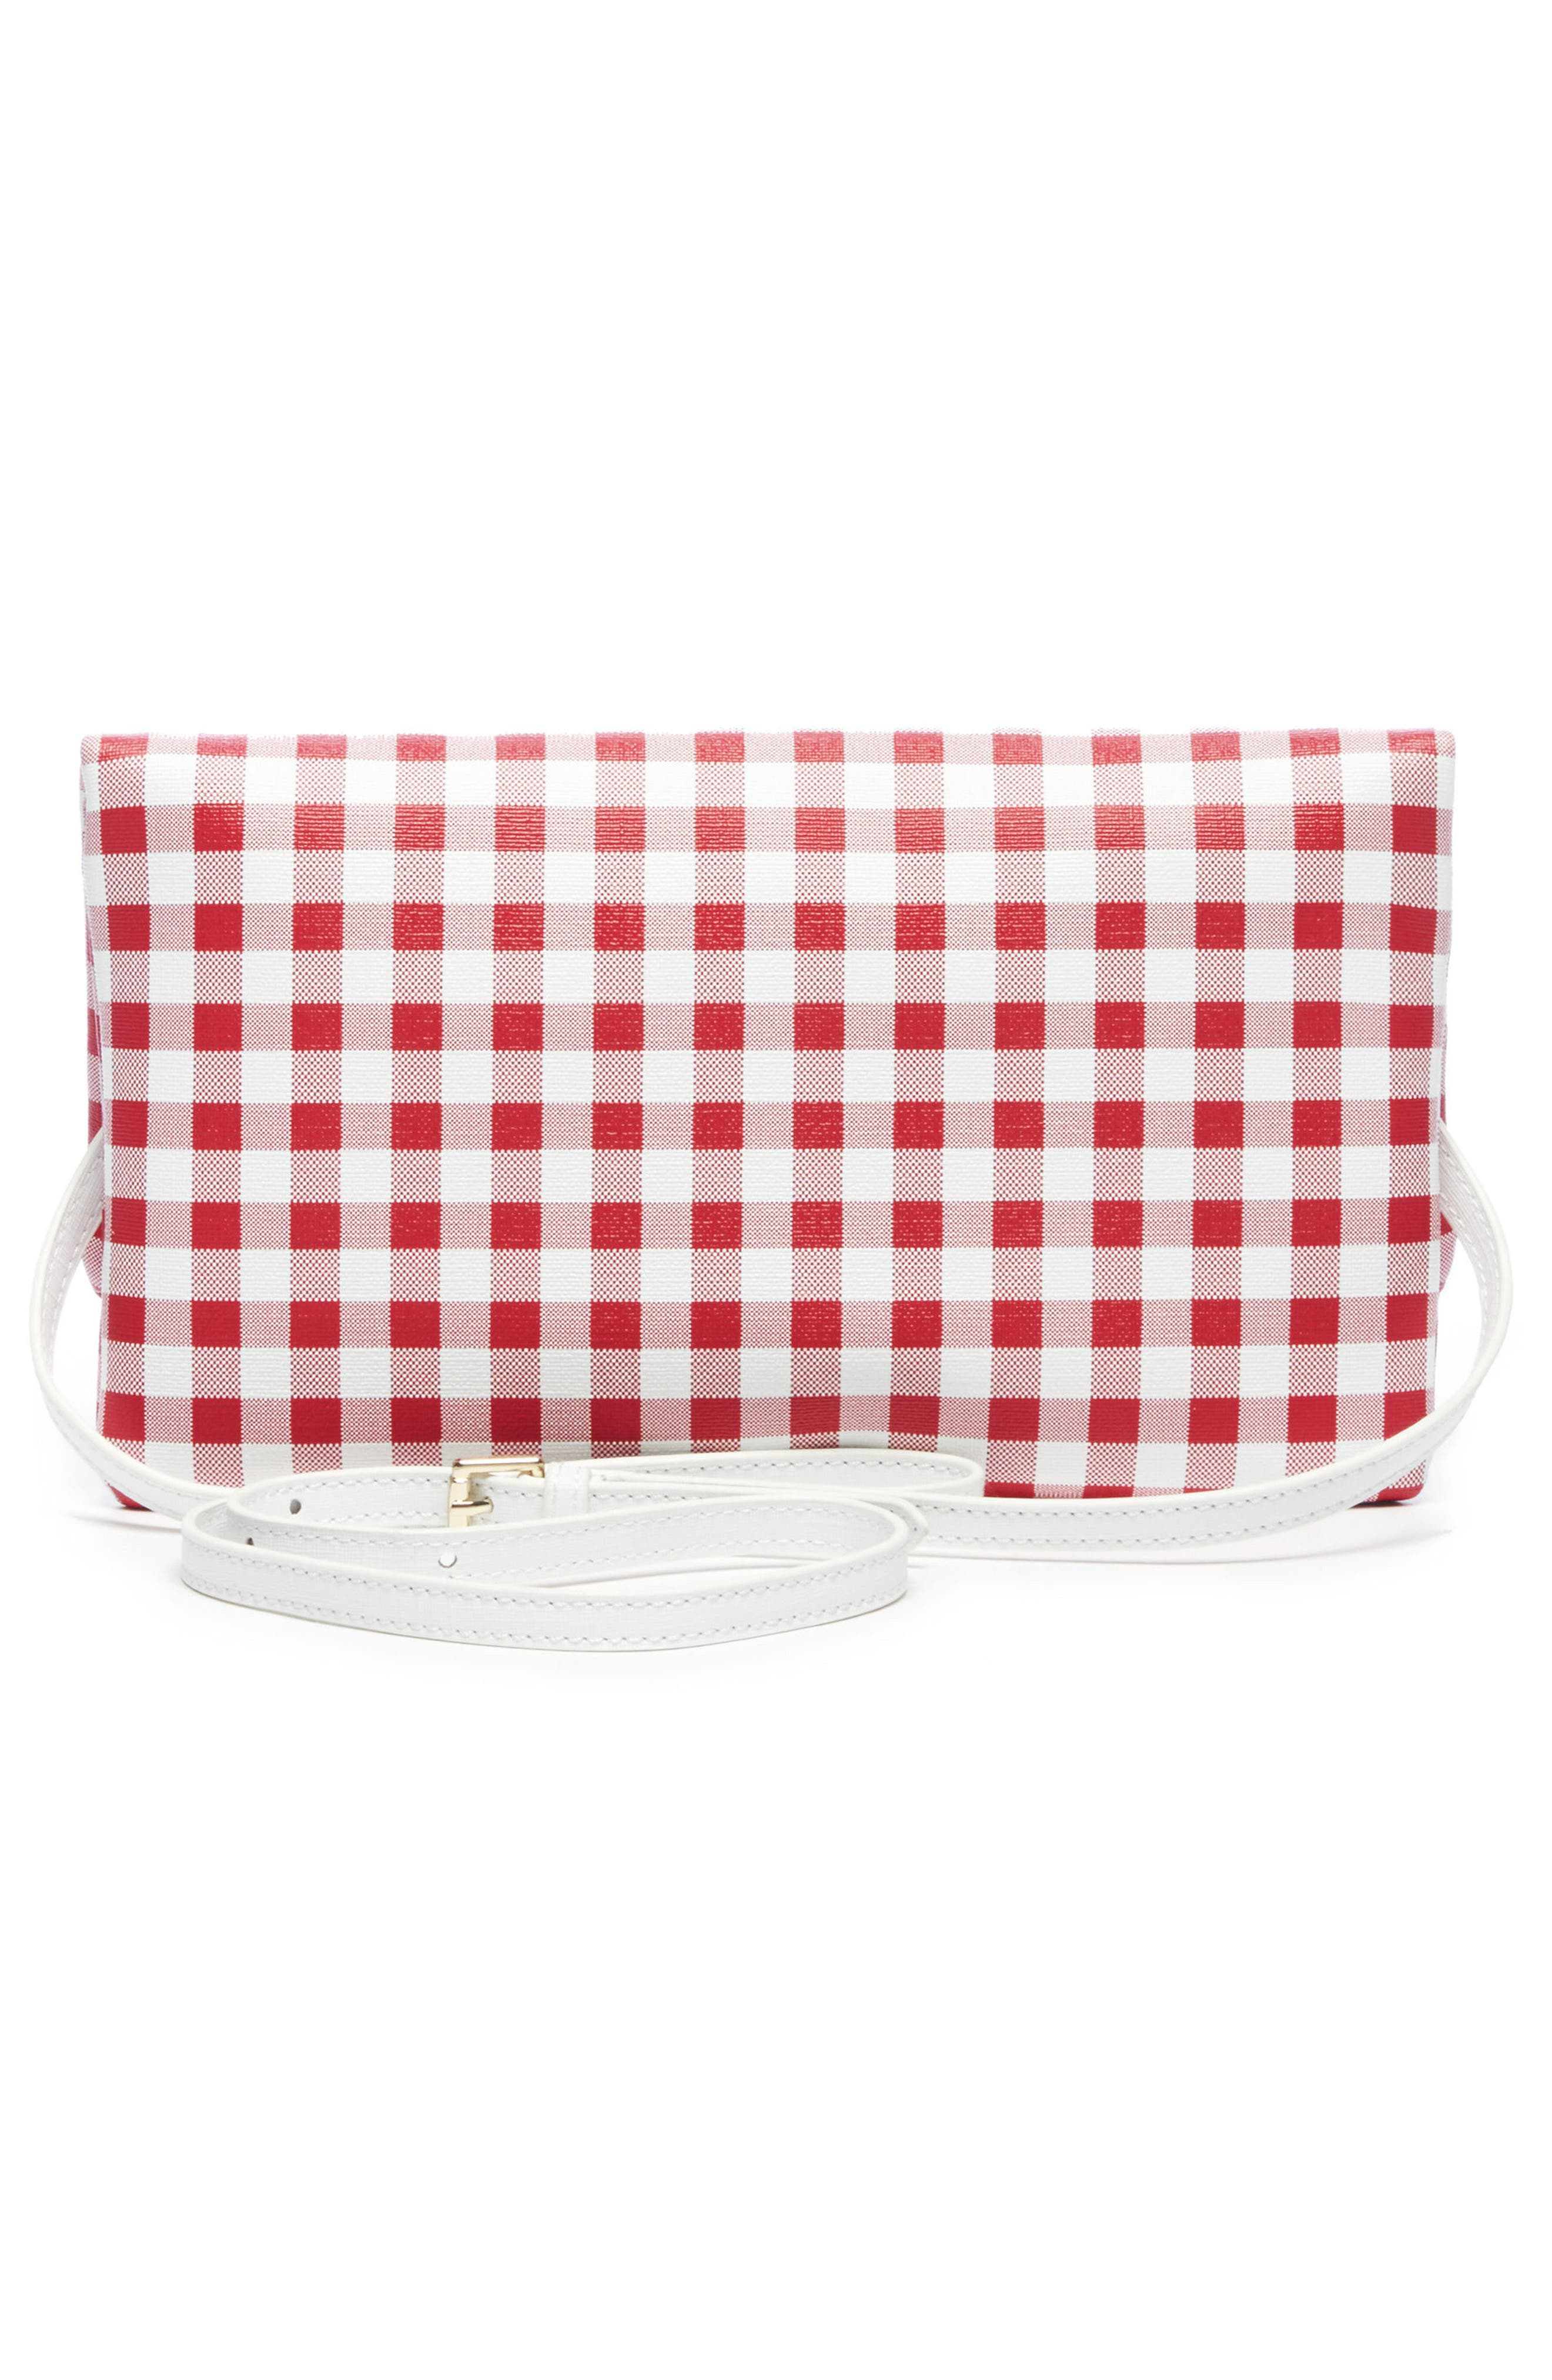 Faux Leather Foldover Clutch,                             Alternate thumbnail 2, color,                             Red/ White